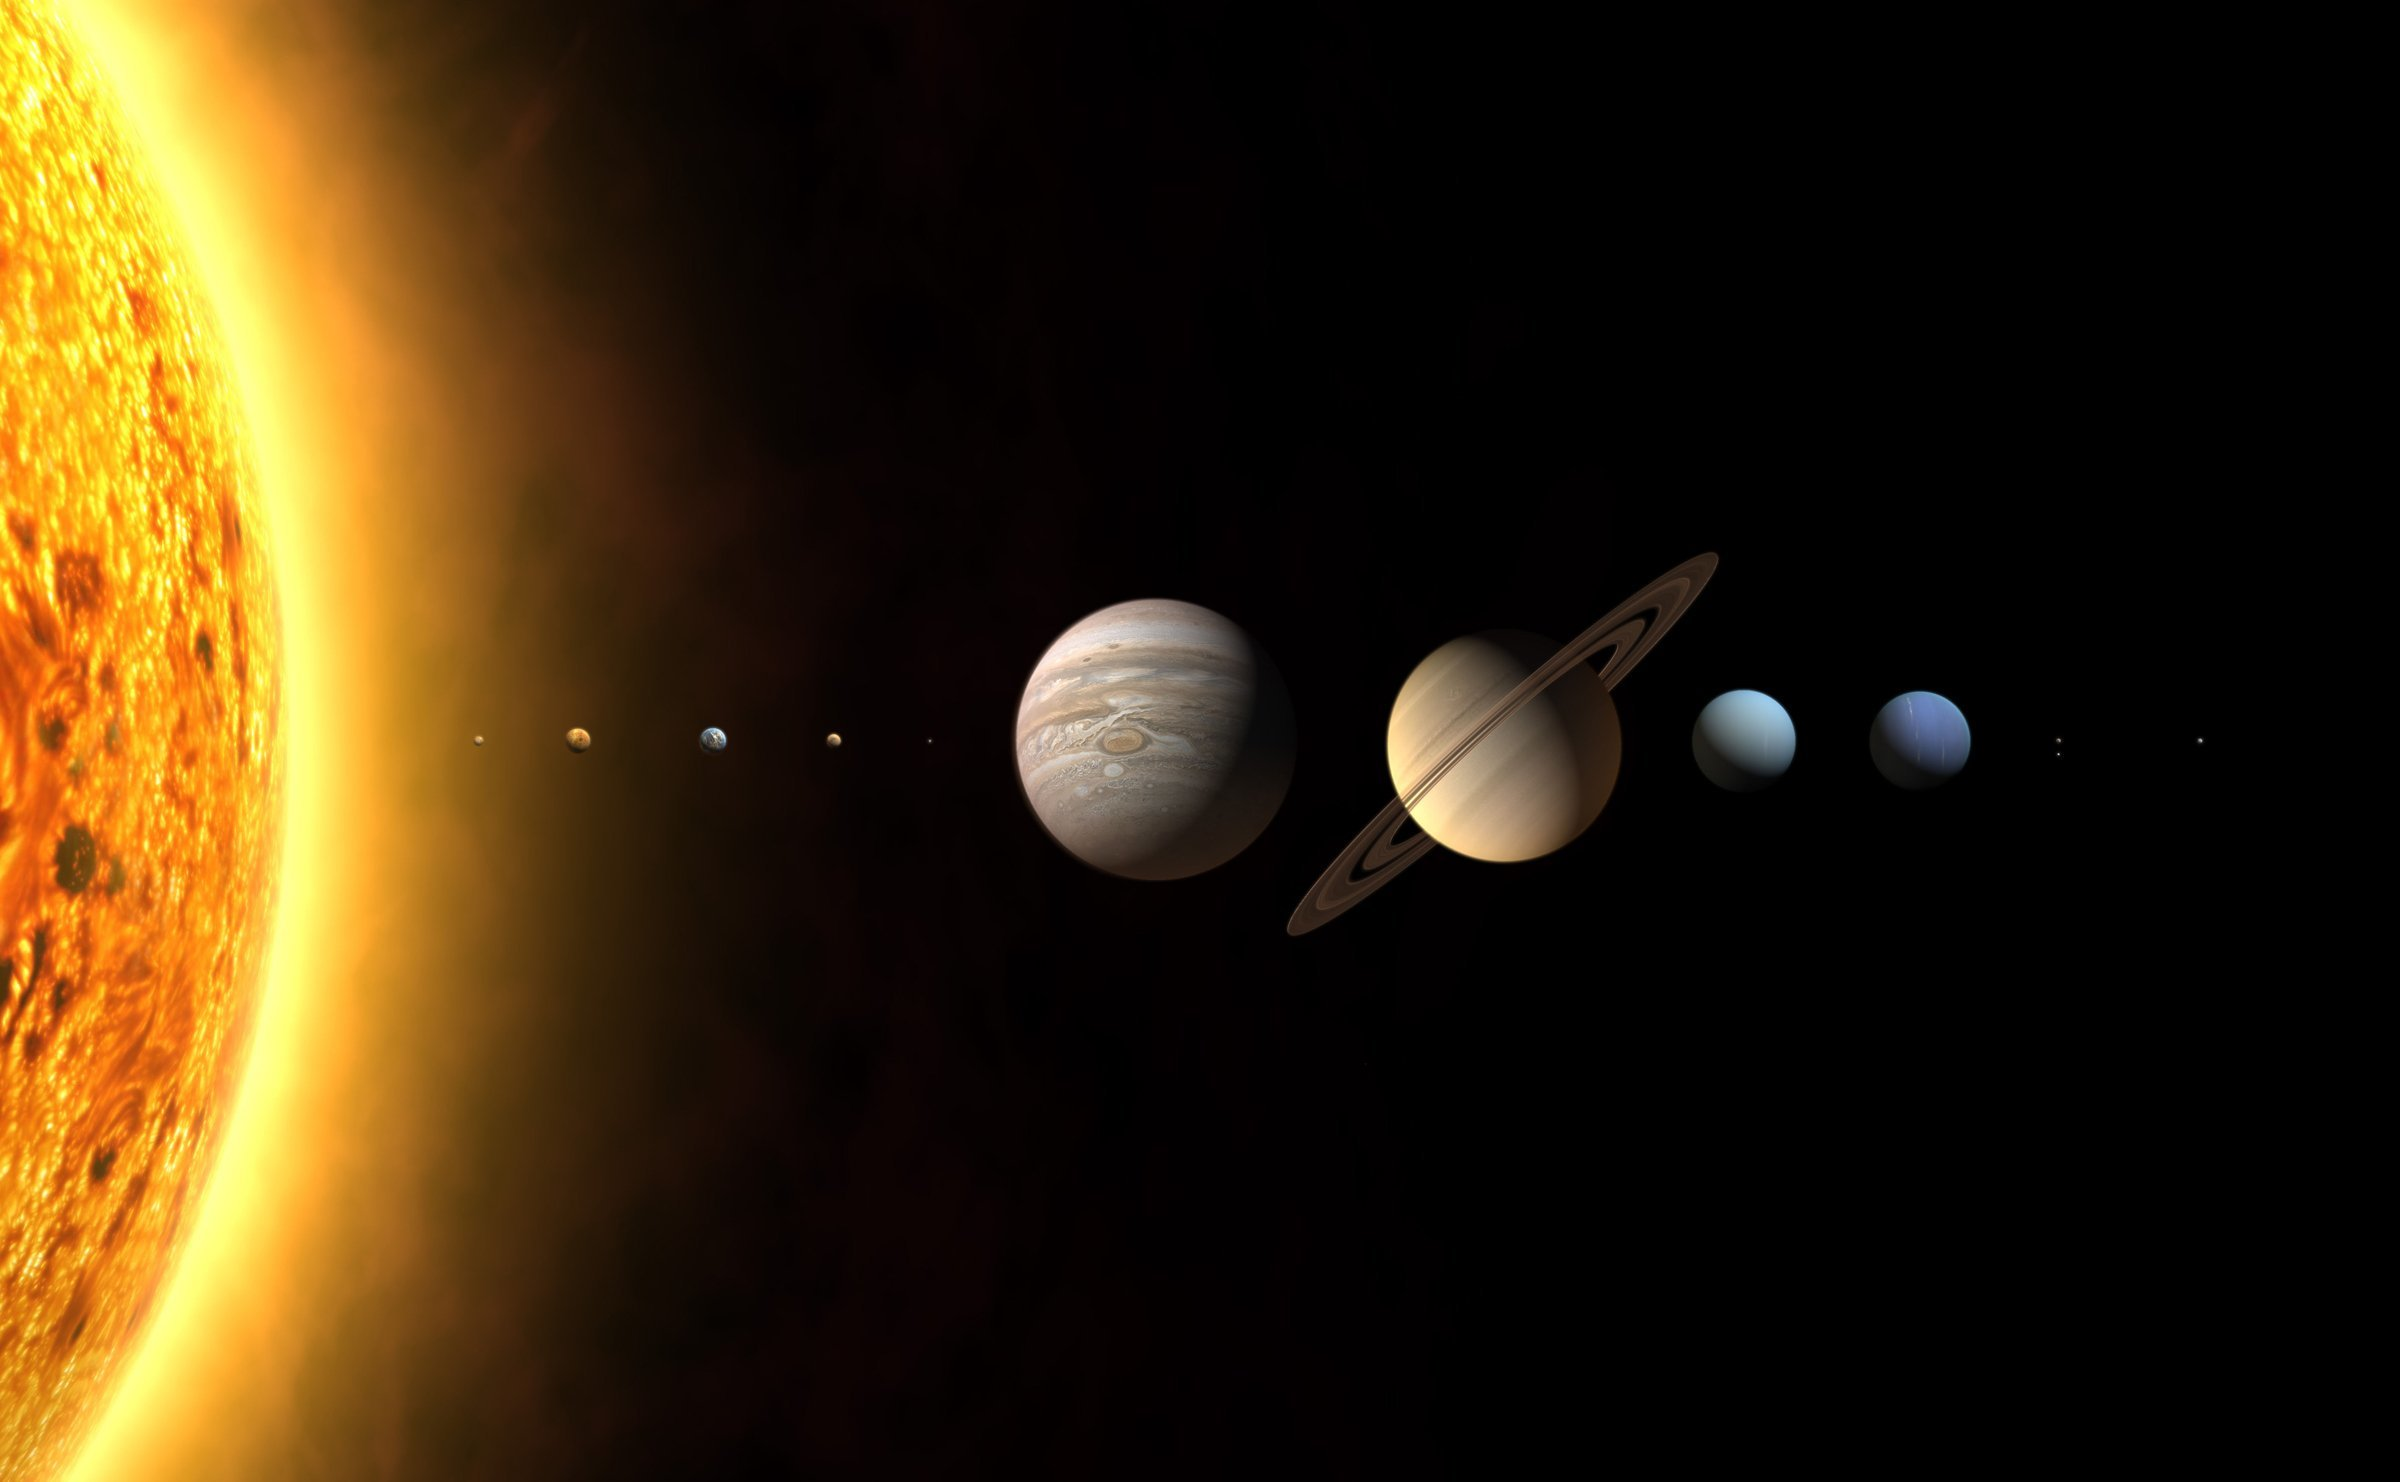 Growth of the solar system - presumably three new planets